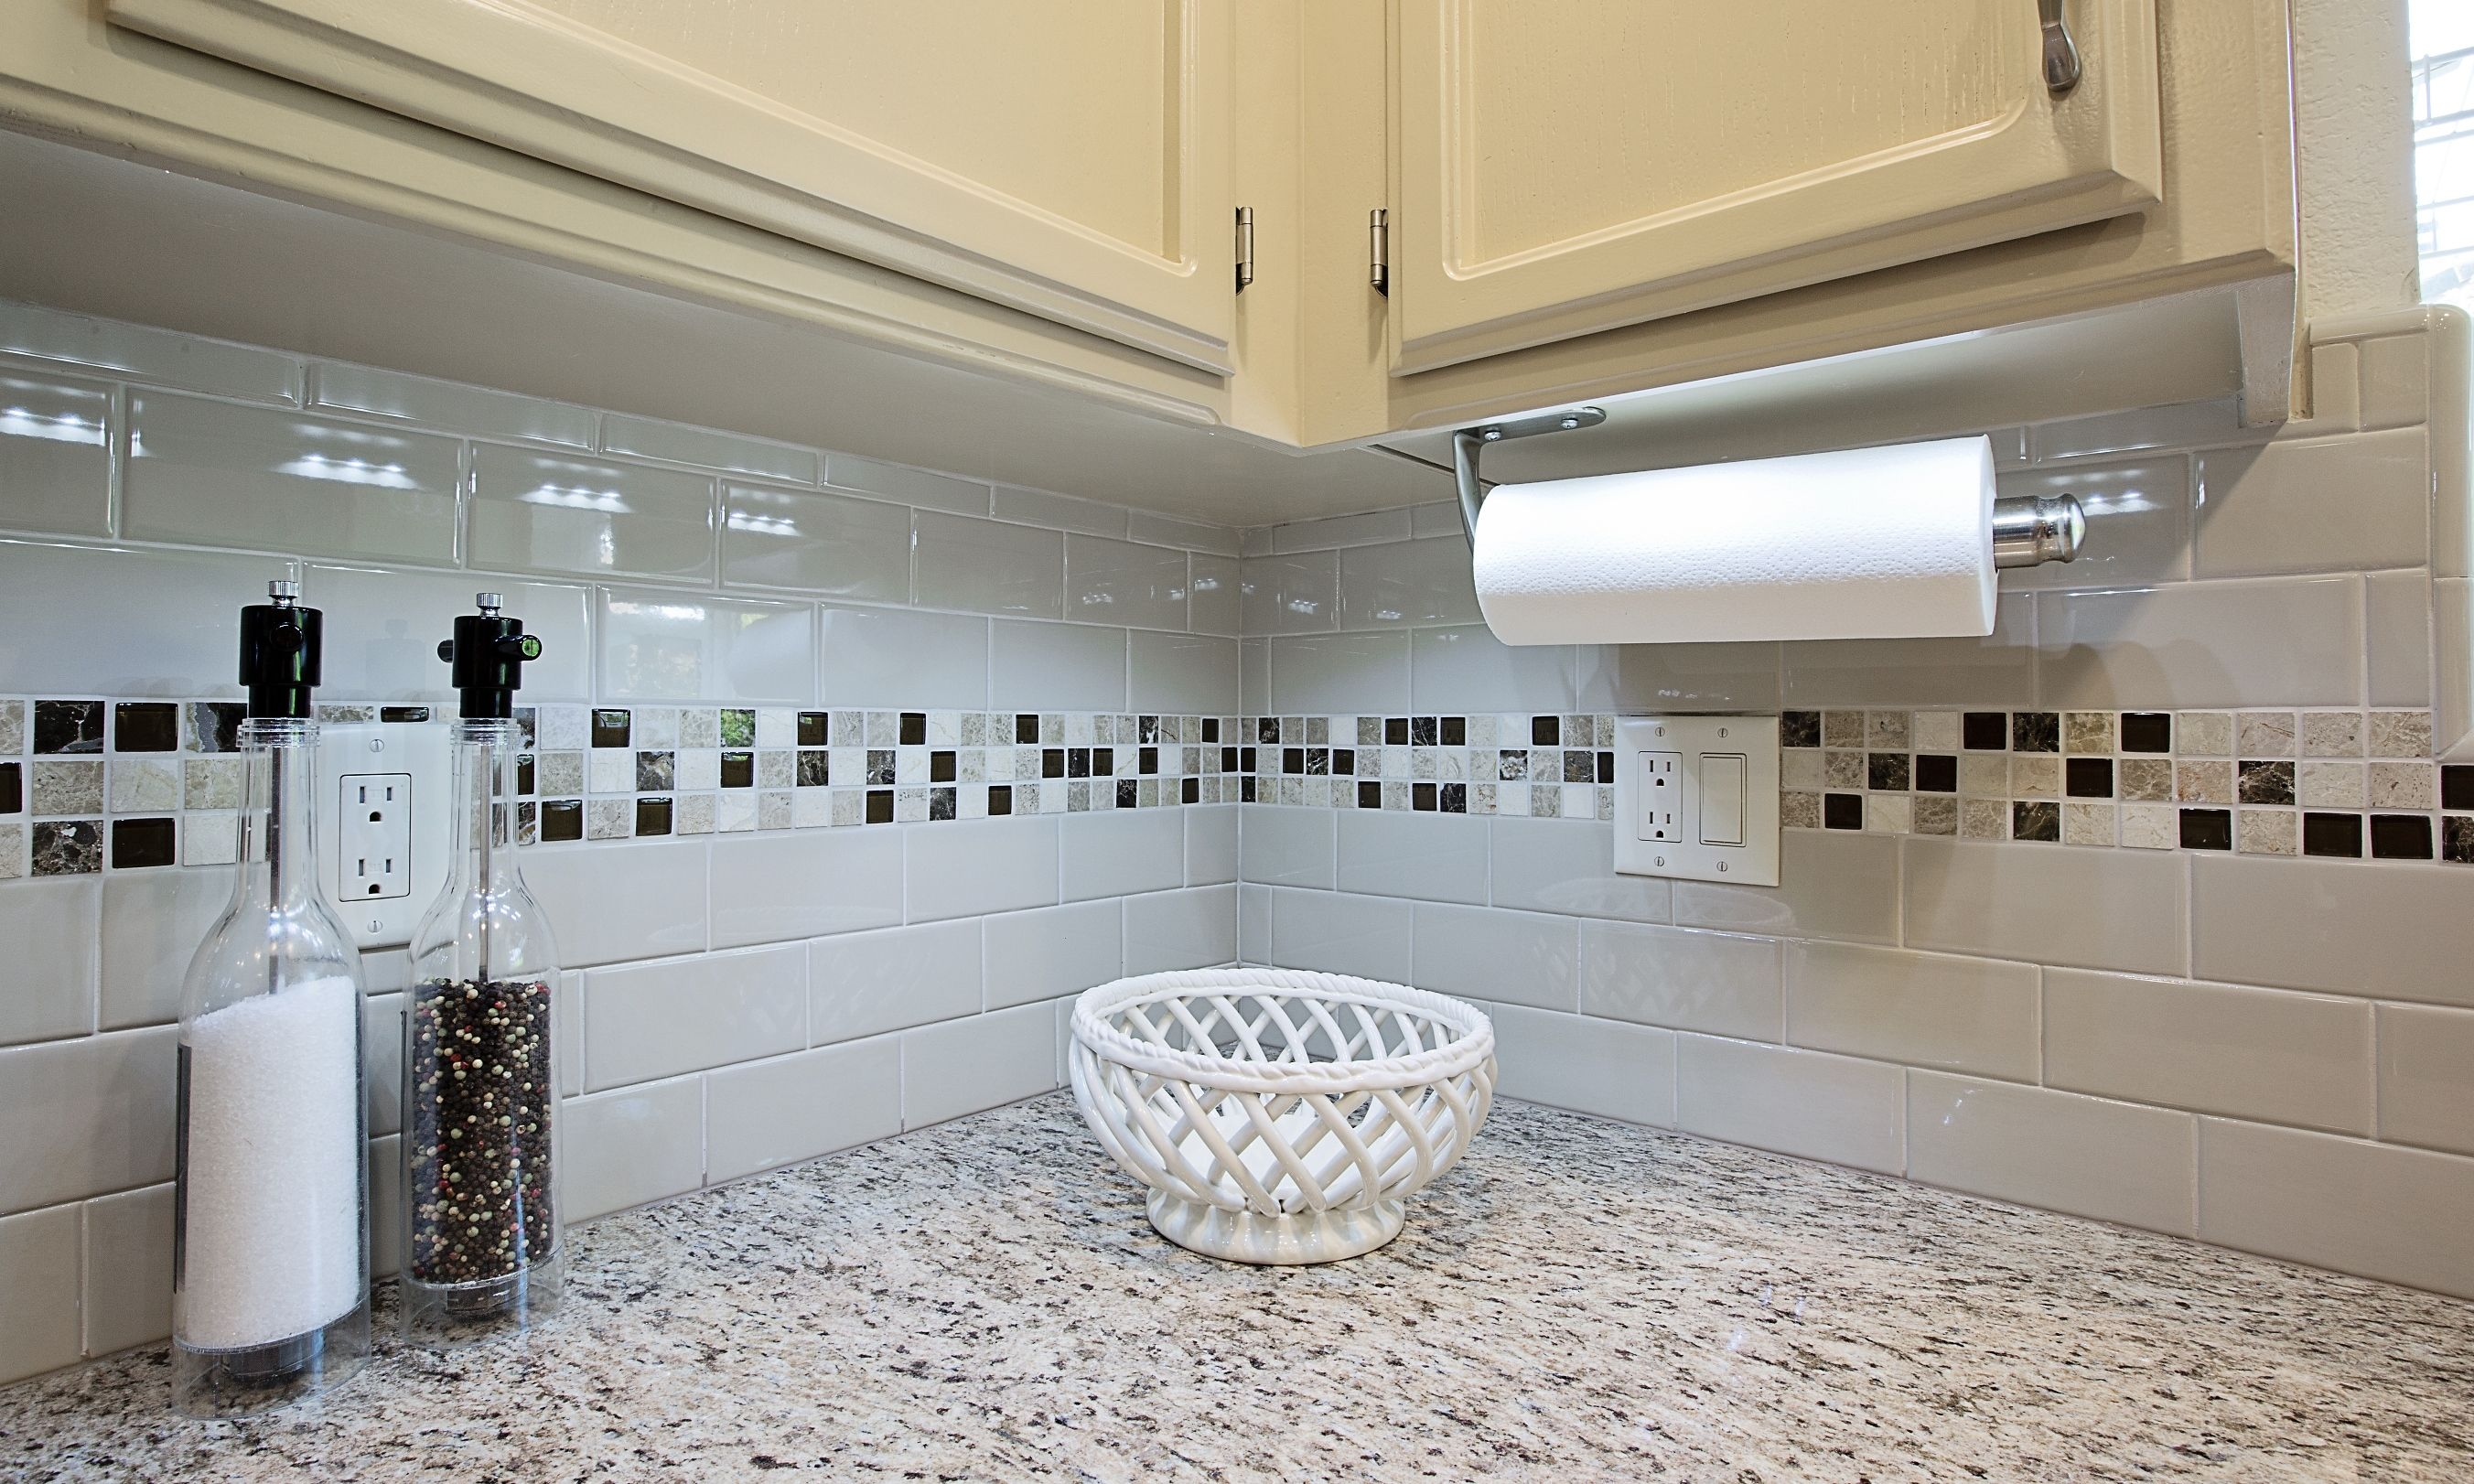 Premier Decor Tile By Msi Celebrating National Backsplash Month Part 3 Kitchencrate This